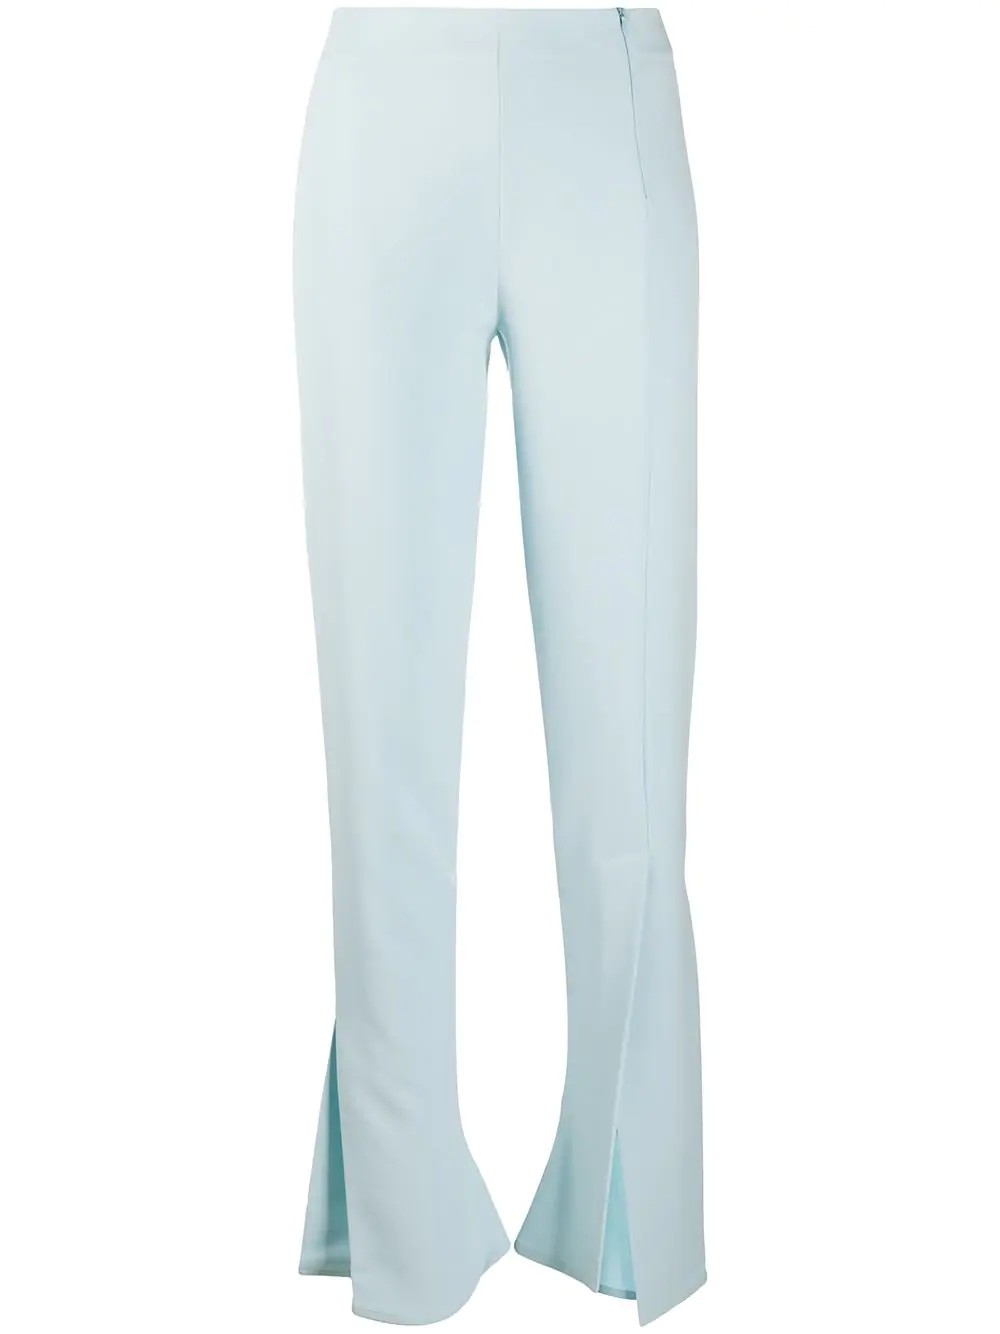 FITTED PANTS WITH SIDE AND FRONTAL SLITS